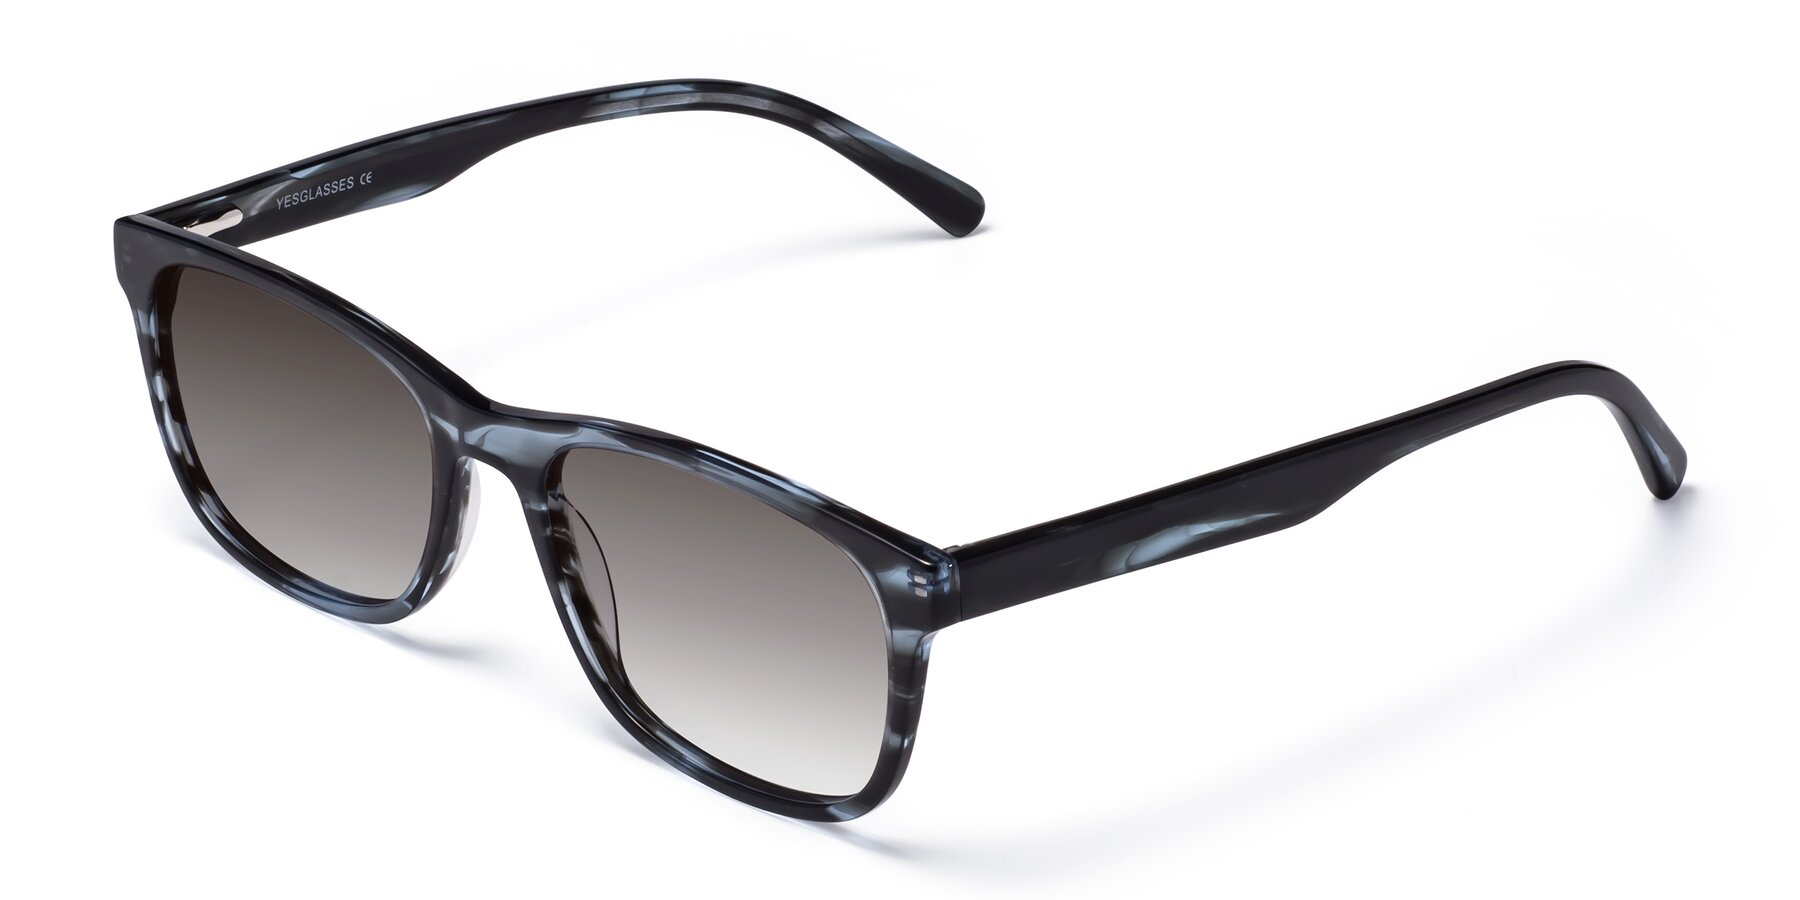 Angle of SR6035 in Blue-Tortoise with Gray Gradient Lenses